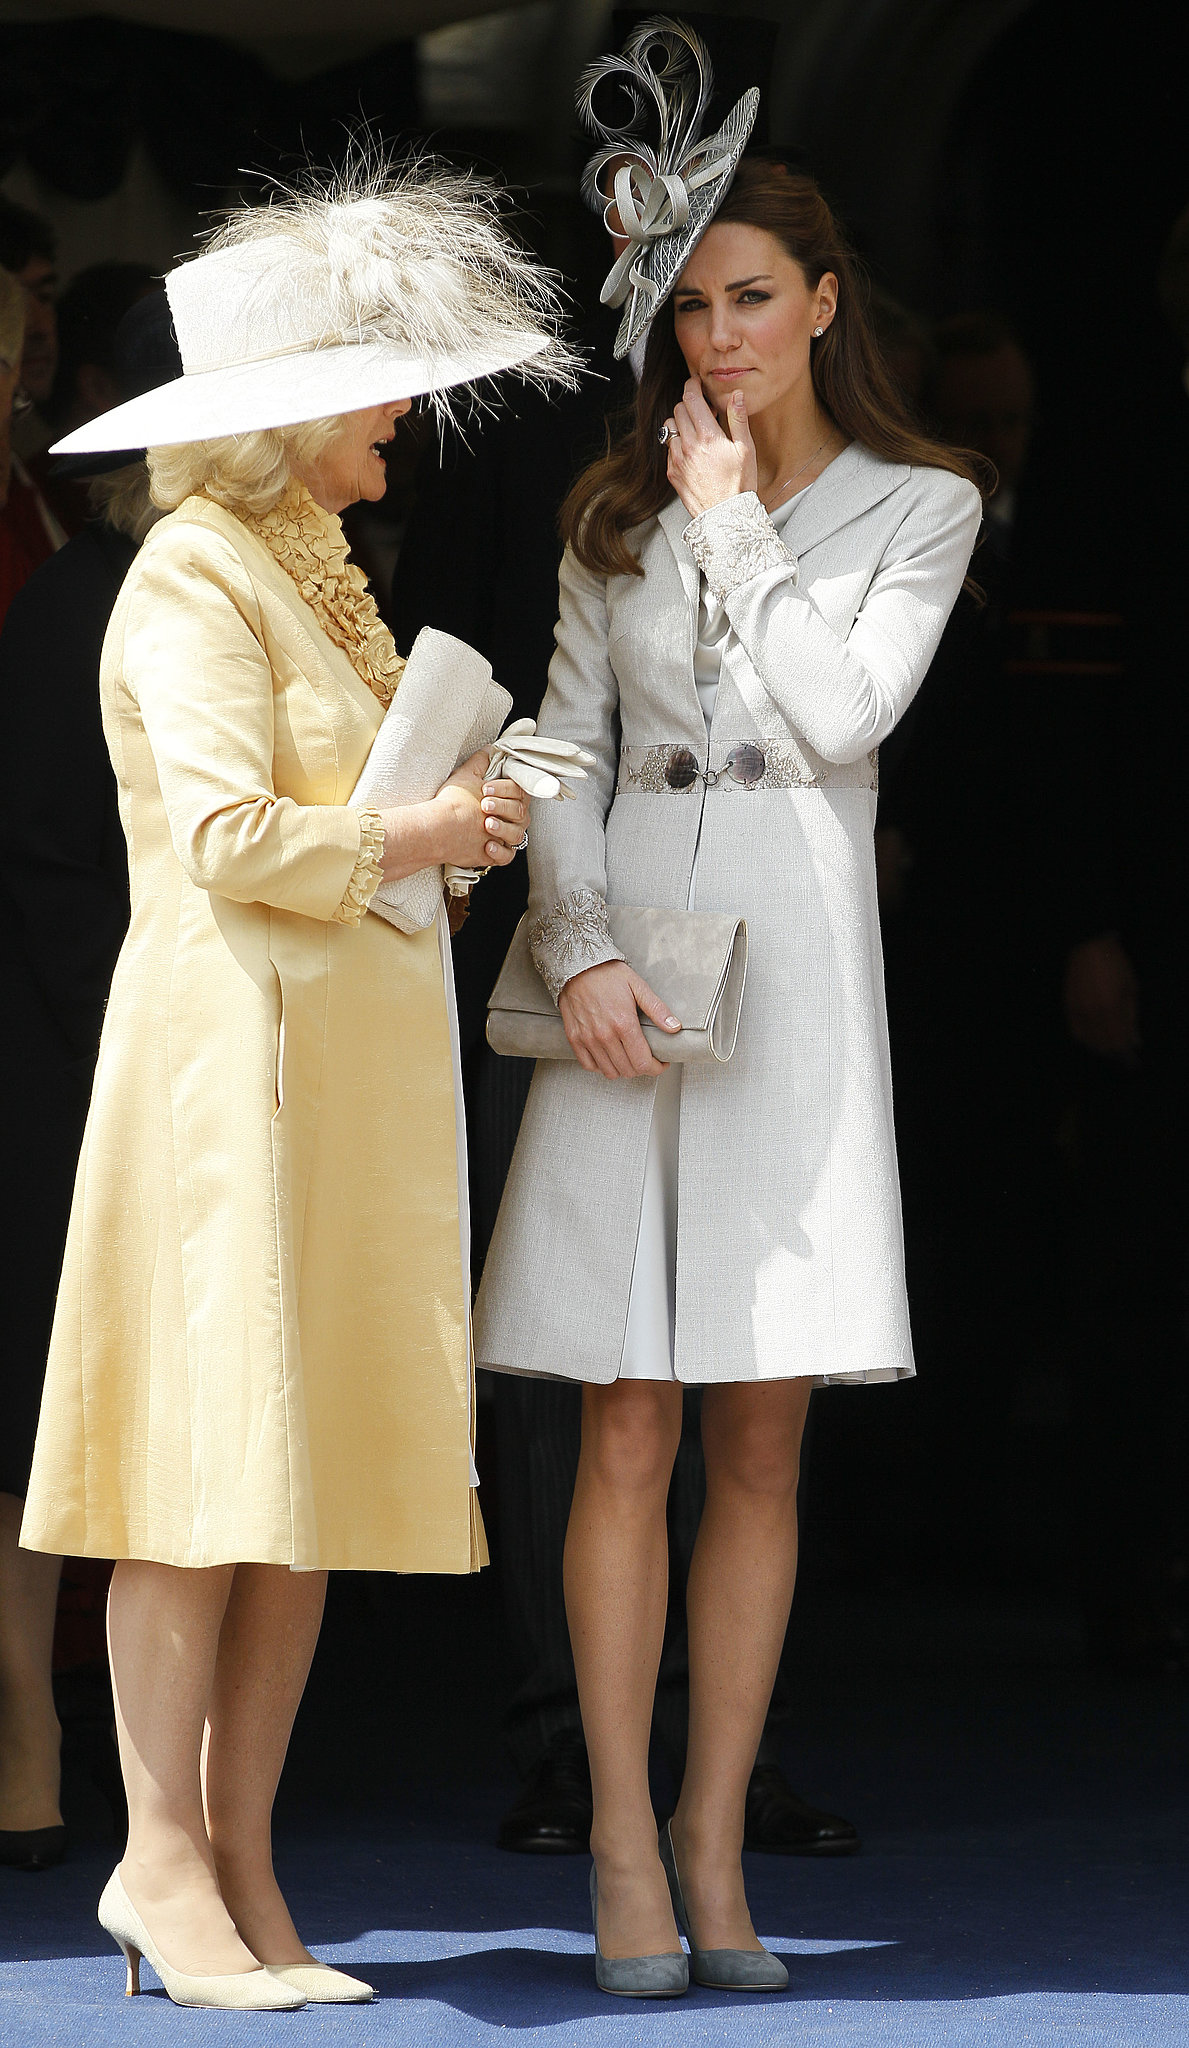 Kate chatted with Camilla while watching the Garter Service pass by in Windsor, England, in June 2011.